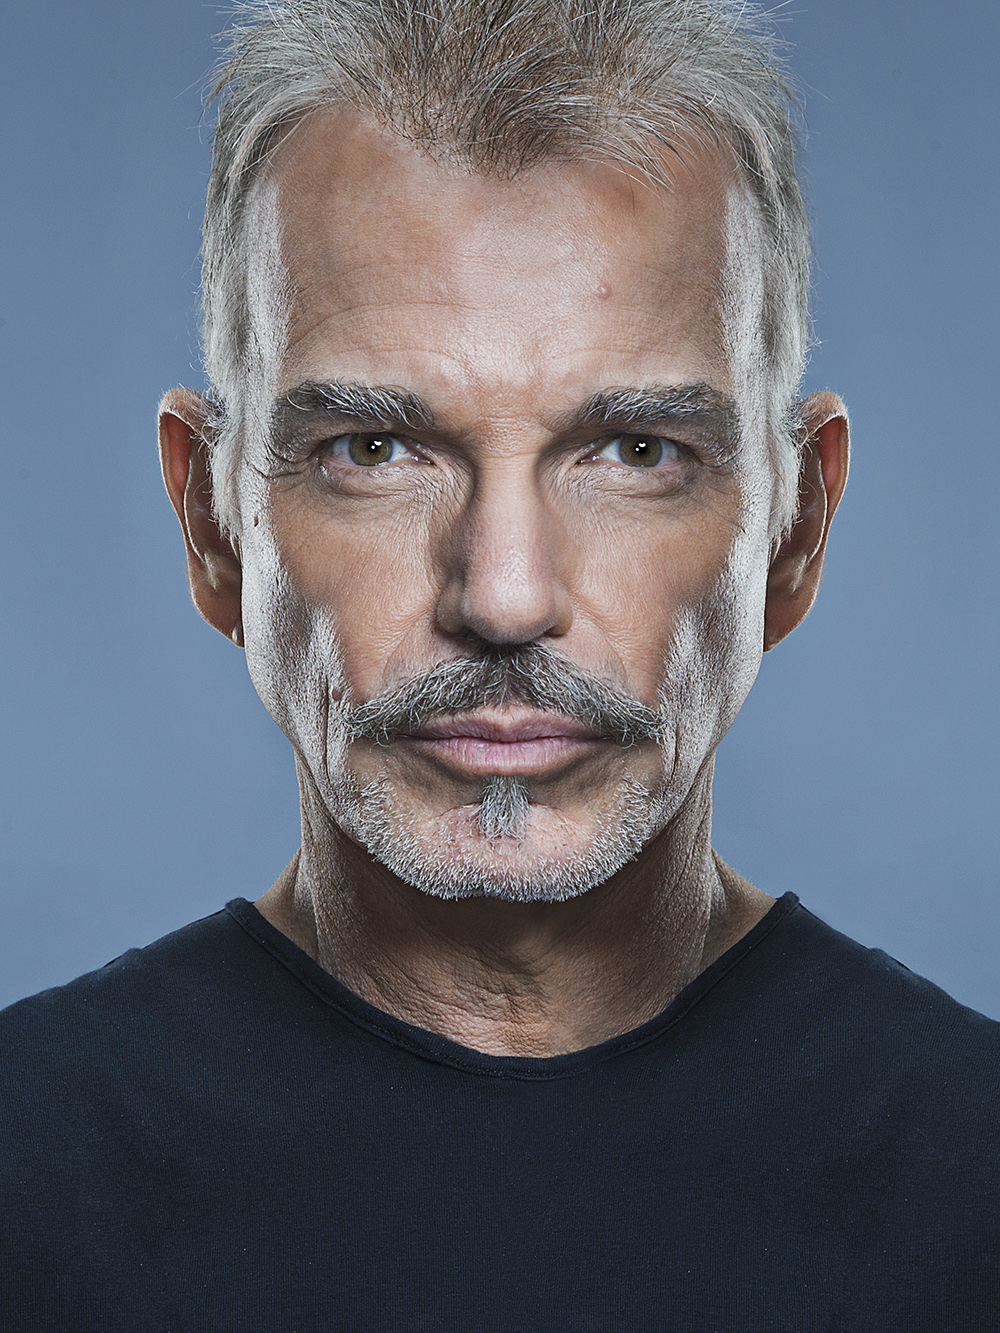 billy bob thornton фильмографияbilly bob thornton fargo, billy bob thornton young, billy bob thornton angelina, billy bob thornton instagram, billy bob thornton 2016, billy bob thornton height, billy bob thornton angelina перевод, billy bob thornton wiki, billy bob thornton goliath, billy bob thornton фильмография, billy bob thornton bald, billy bob thornton movies, billy bob thornton 2017, billy bob thornton imdb, billy bob thornton tattoo, billy bob thornton twitter, billy bob thornton band, billy bob thornton net worth, billy bob thornton oscar, billy bob thornton wife